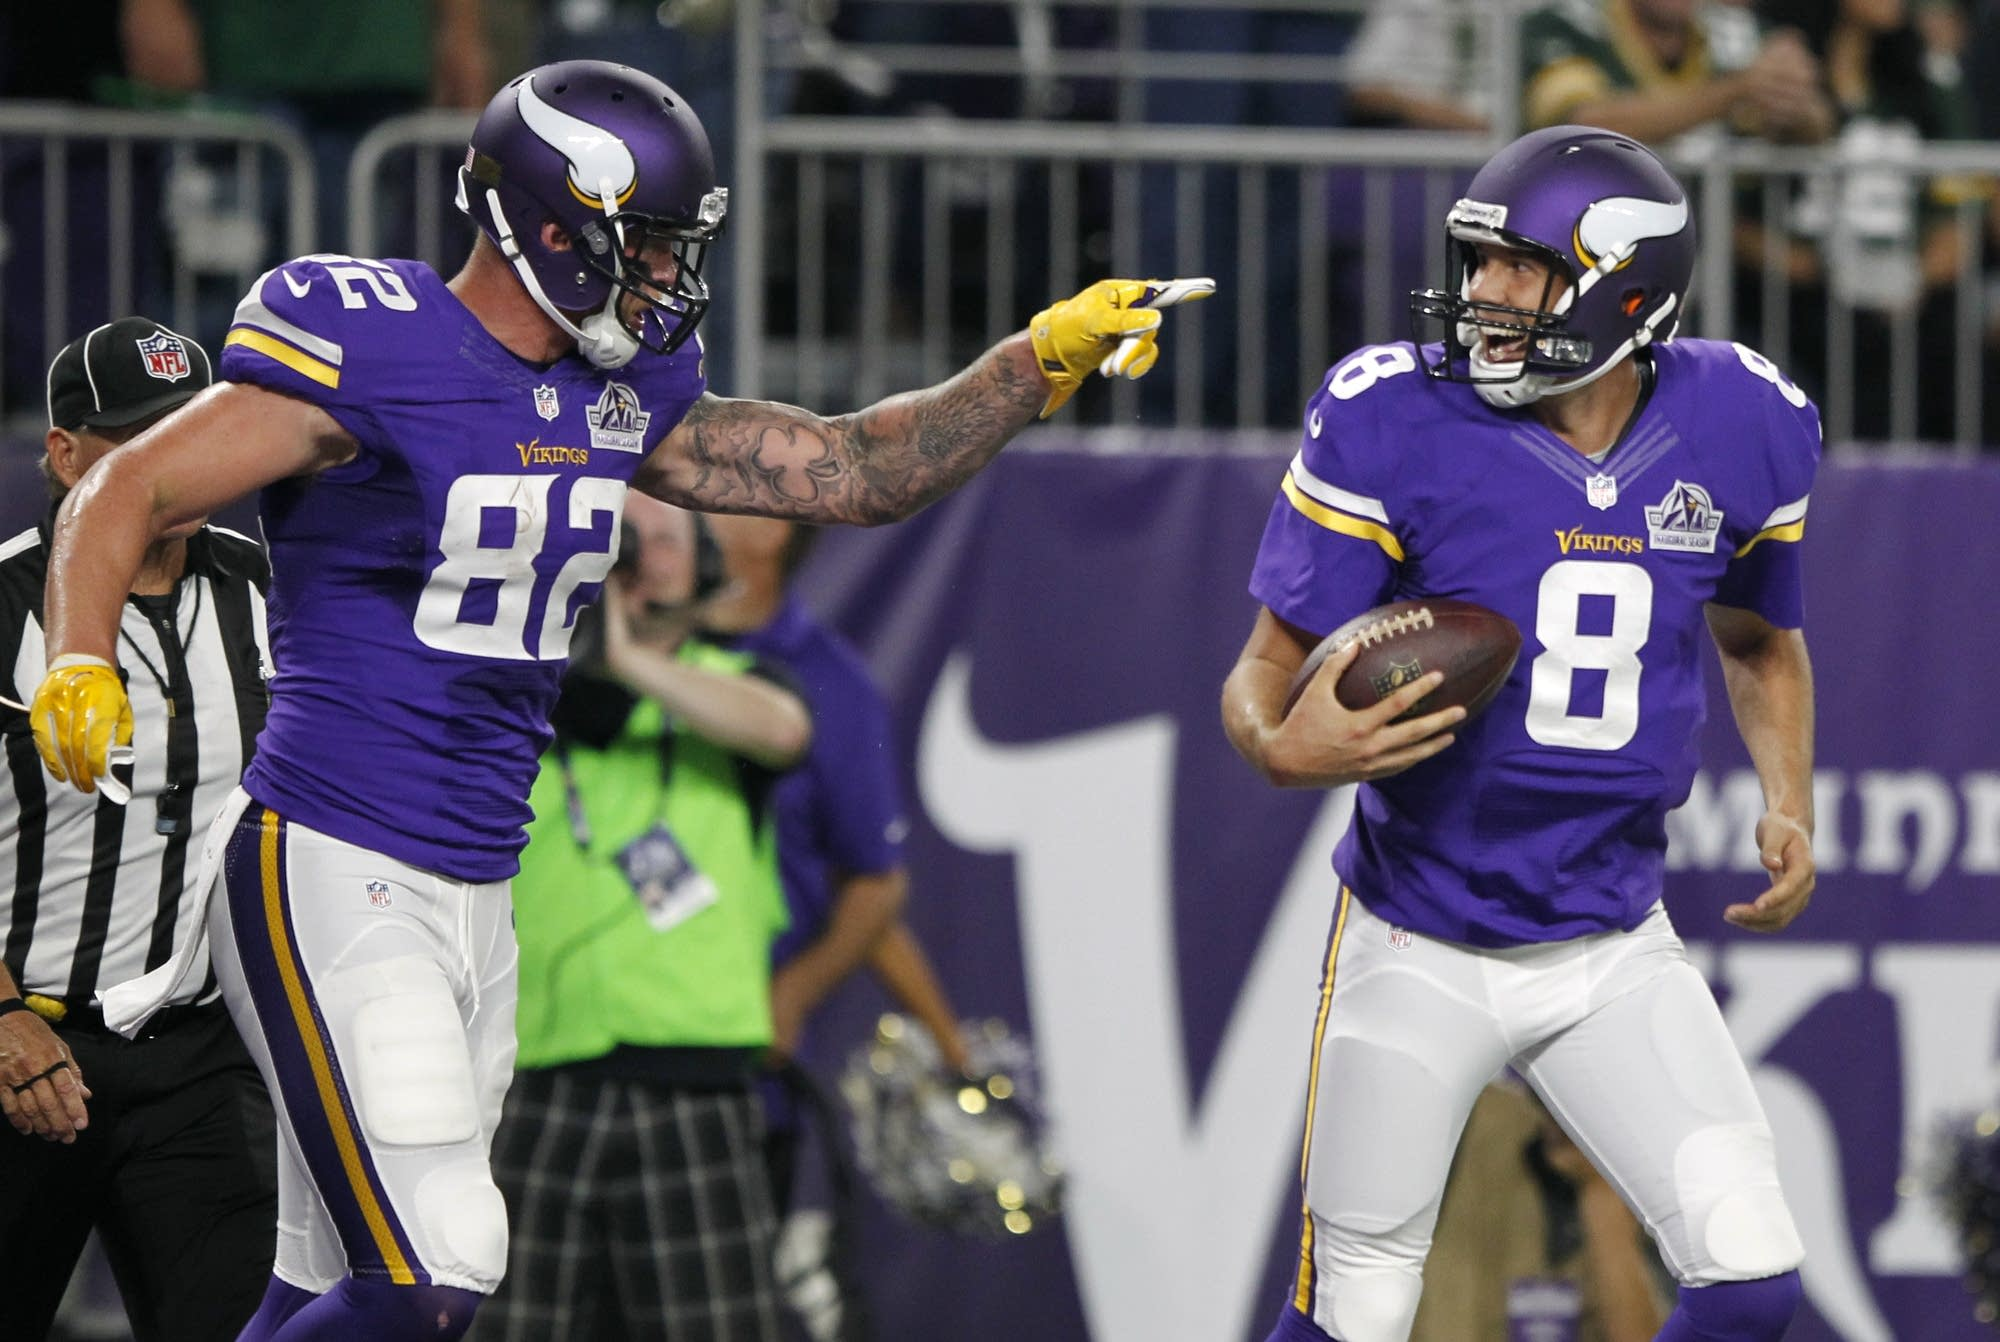 8600bc63d5d Bradford trumps Rodgers in debut as Vikes beat Pack 17-14 | MPR ...